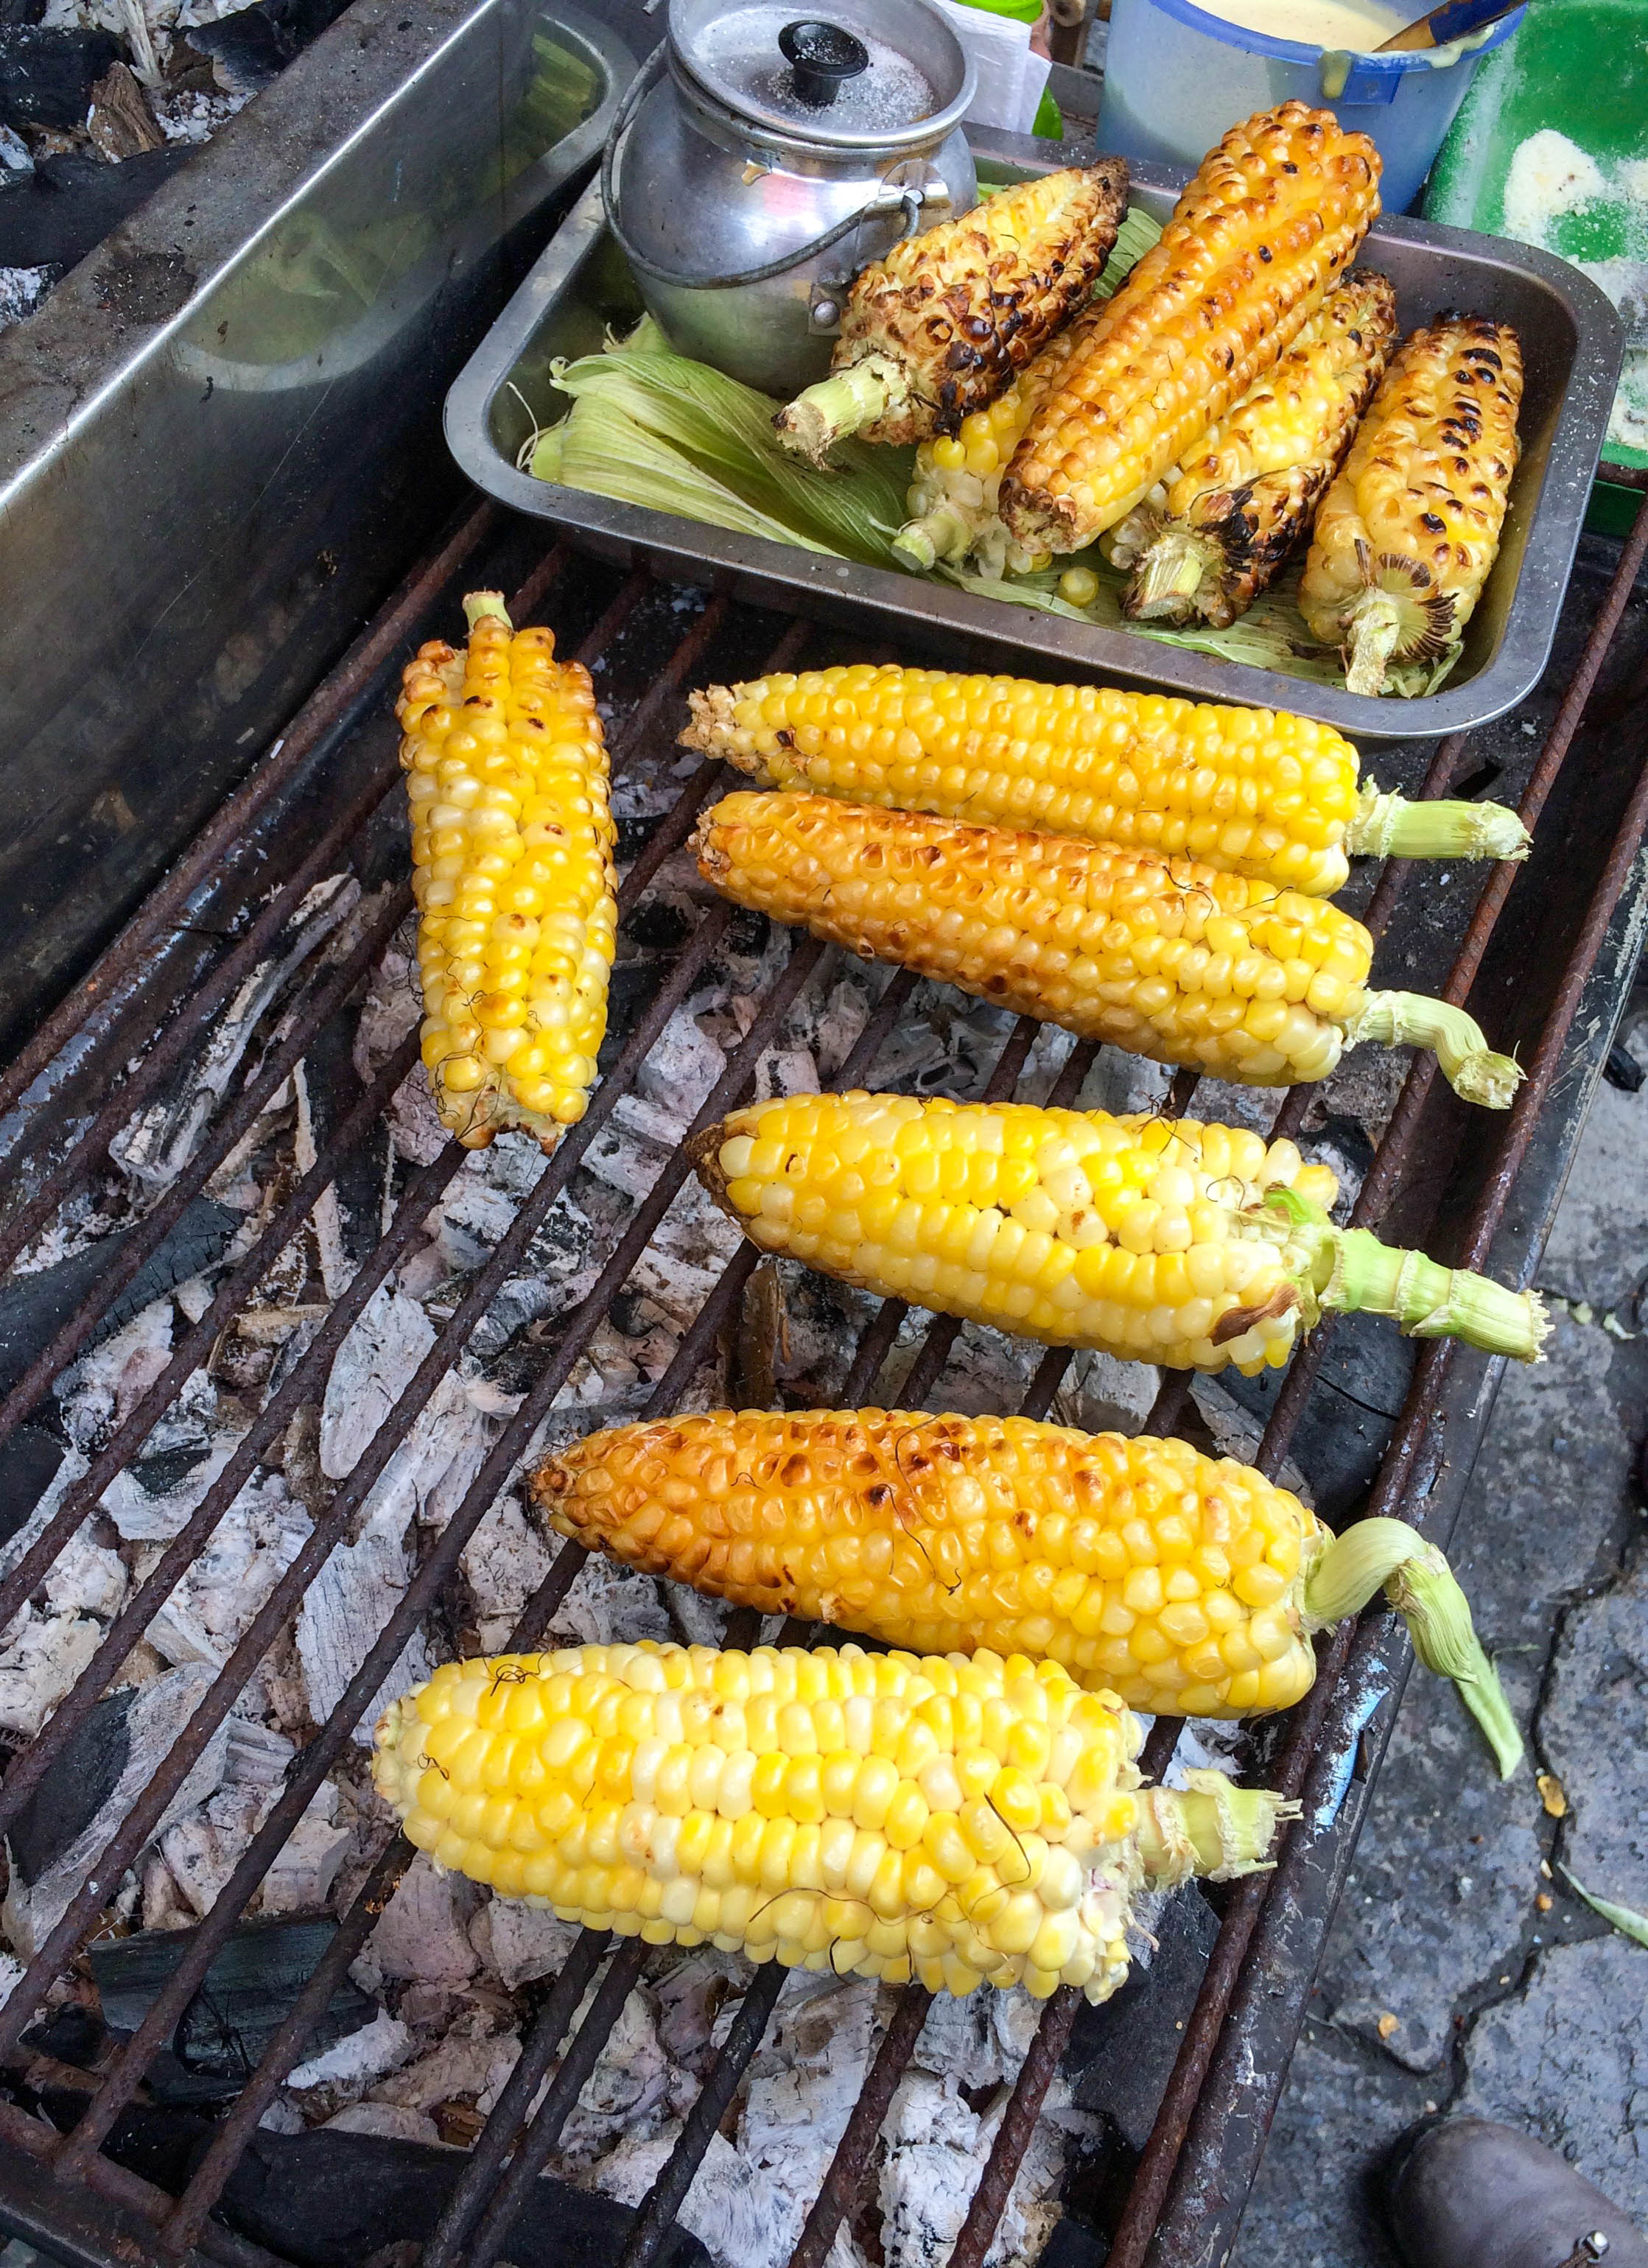 Snack Stop at the BBQ Corn Stand, Ecuador